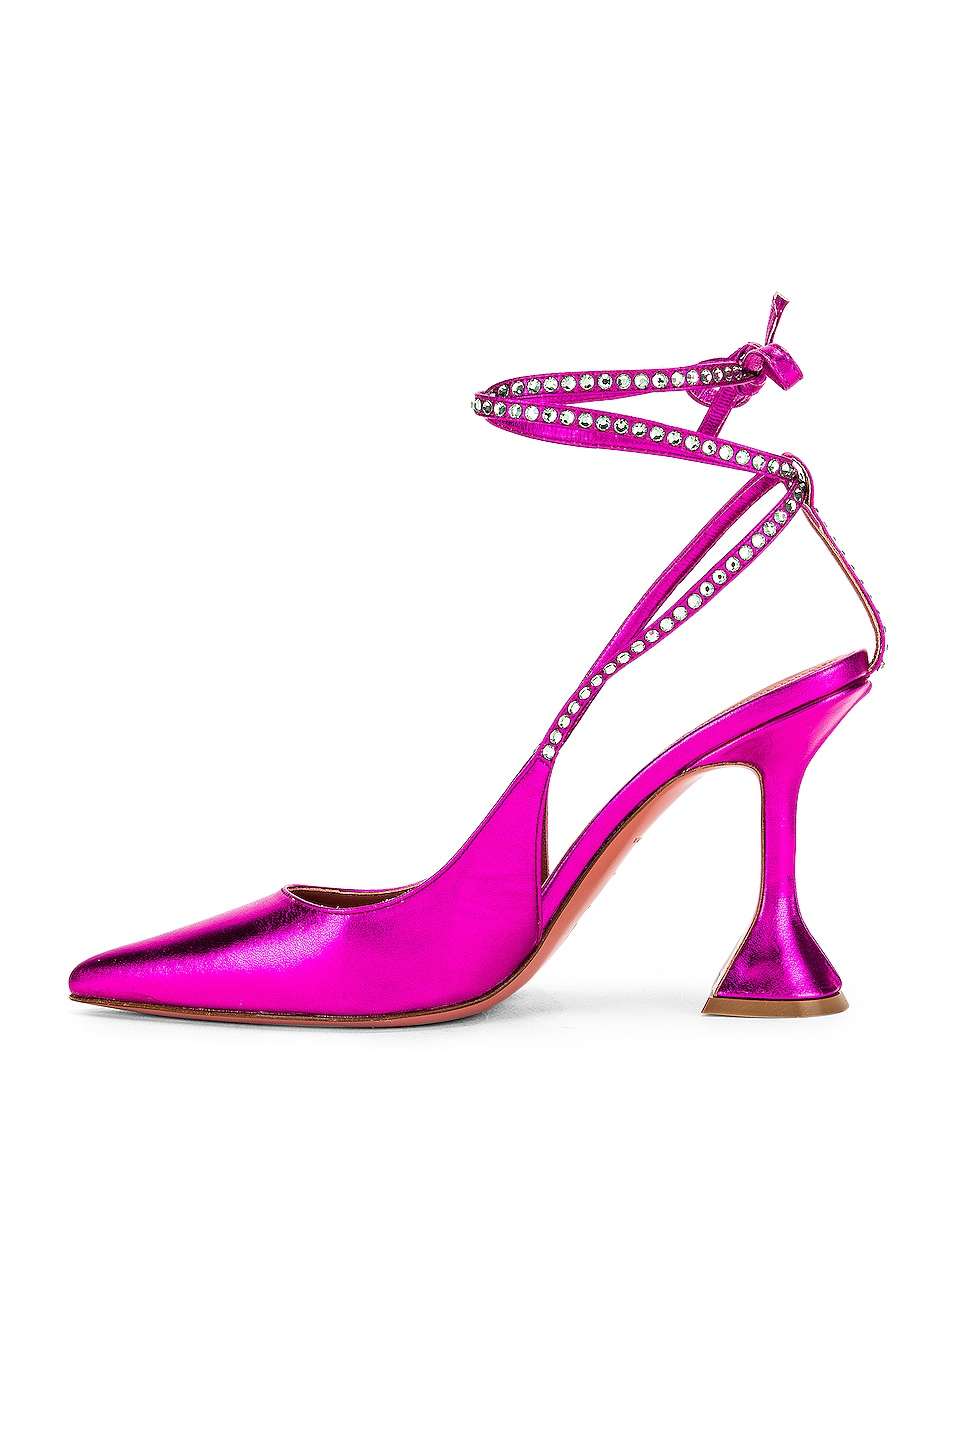 Image 5 of AMINA MUADDI Karma Pump in Fuchsia Metal Nappa